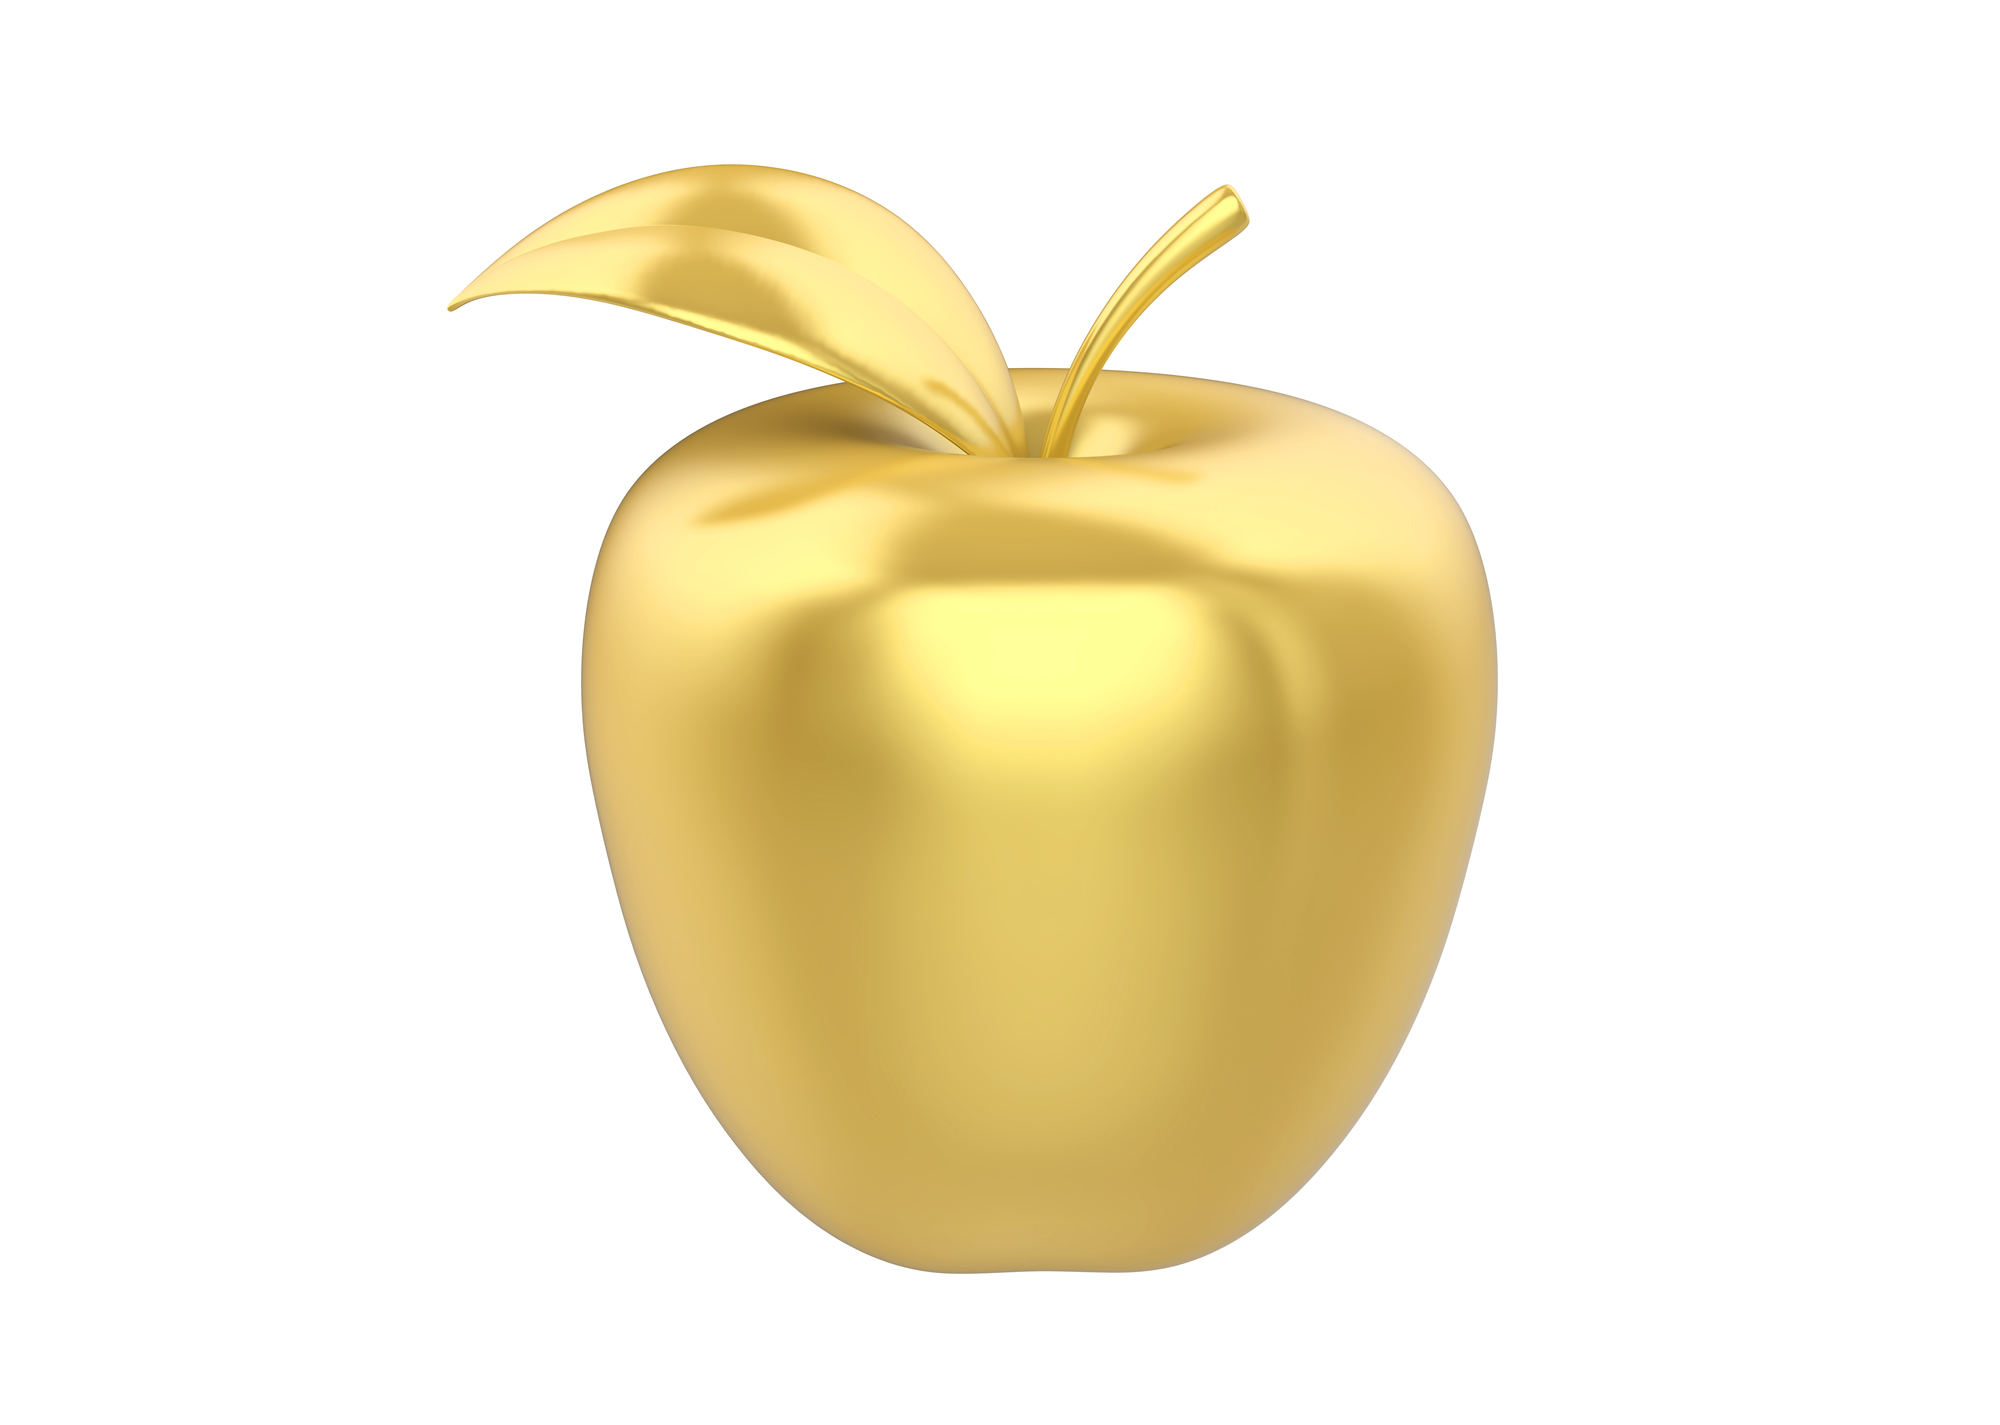 goldenapple.jpg